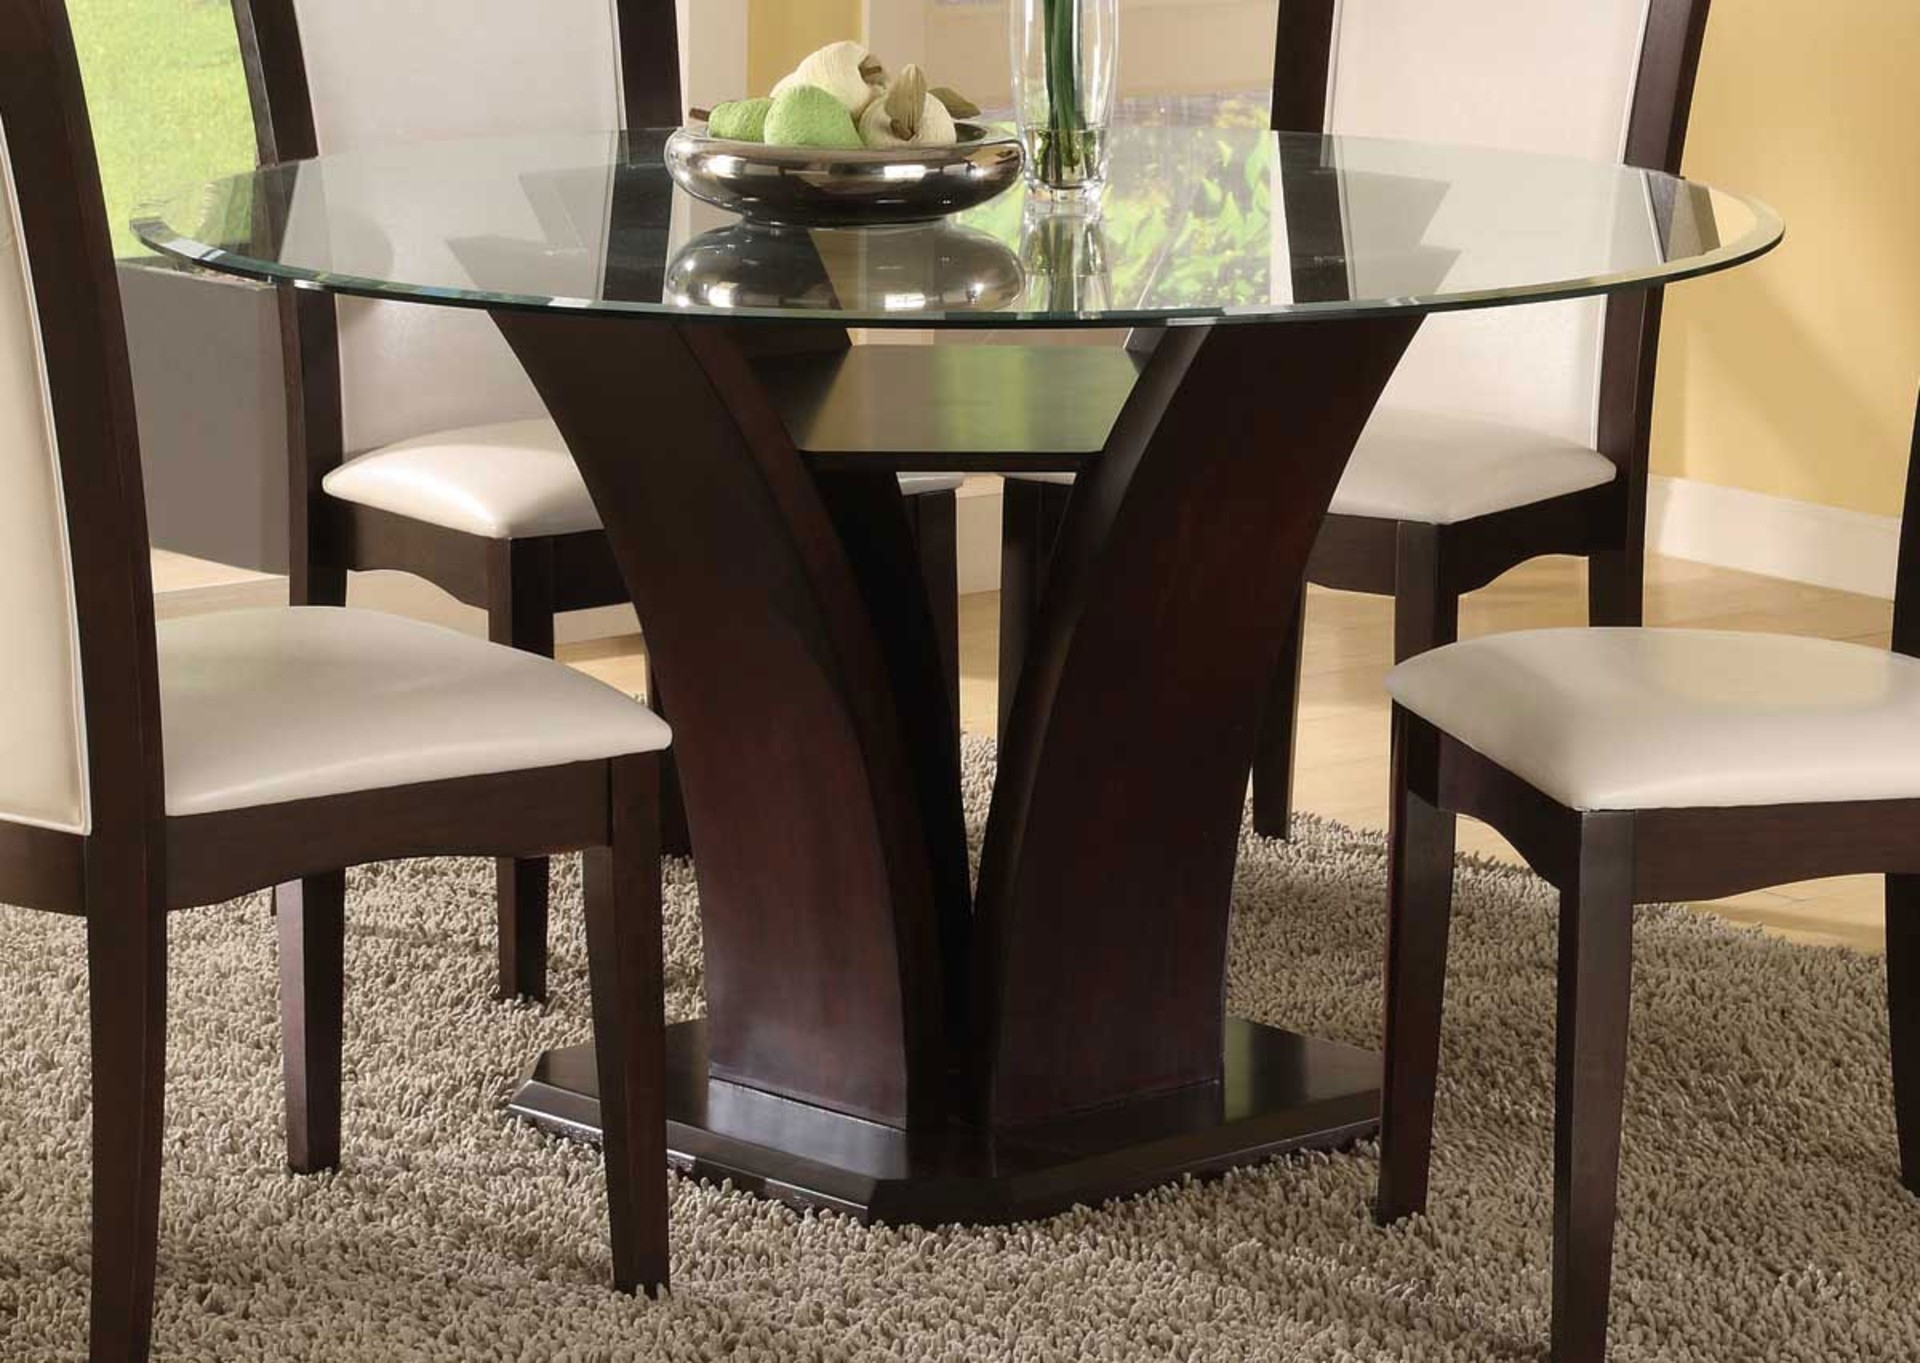 Latest Round Glass Dining Table With Dark Brown Wooden Base On Mocha Fur Pertaining To Dark Brown Wood Dining Tables (View 9 of 25)